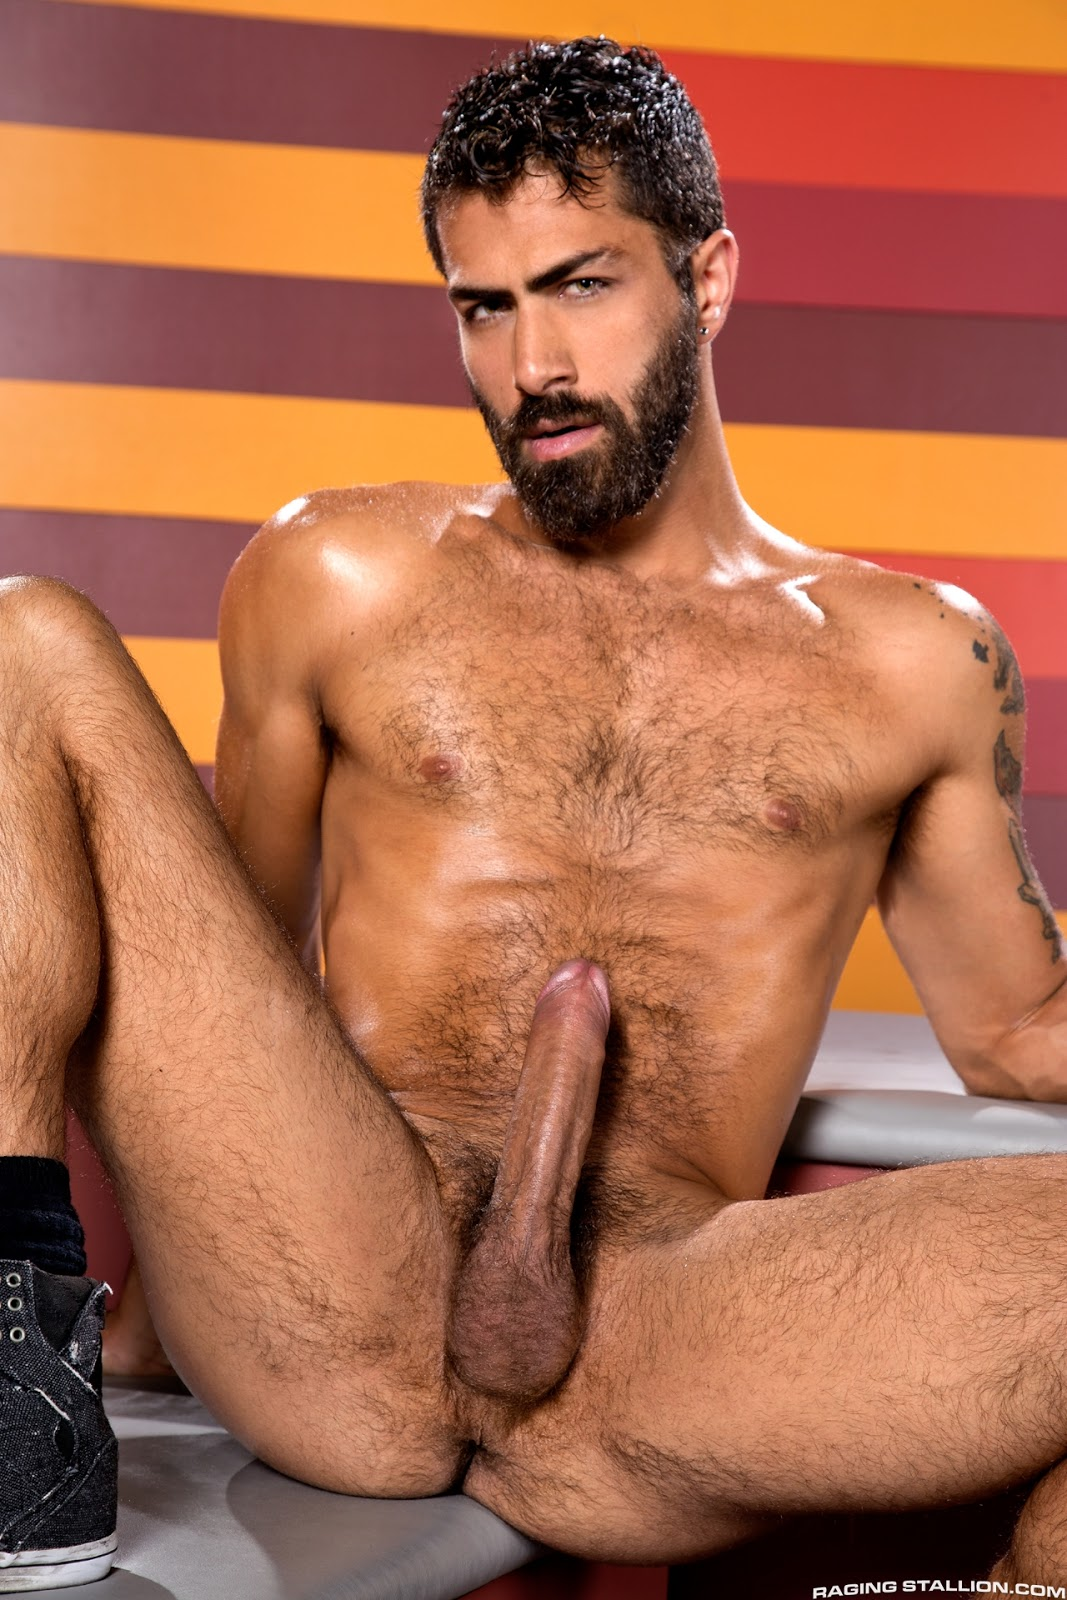 Adam ramzi naked